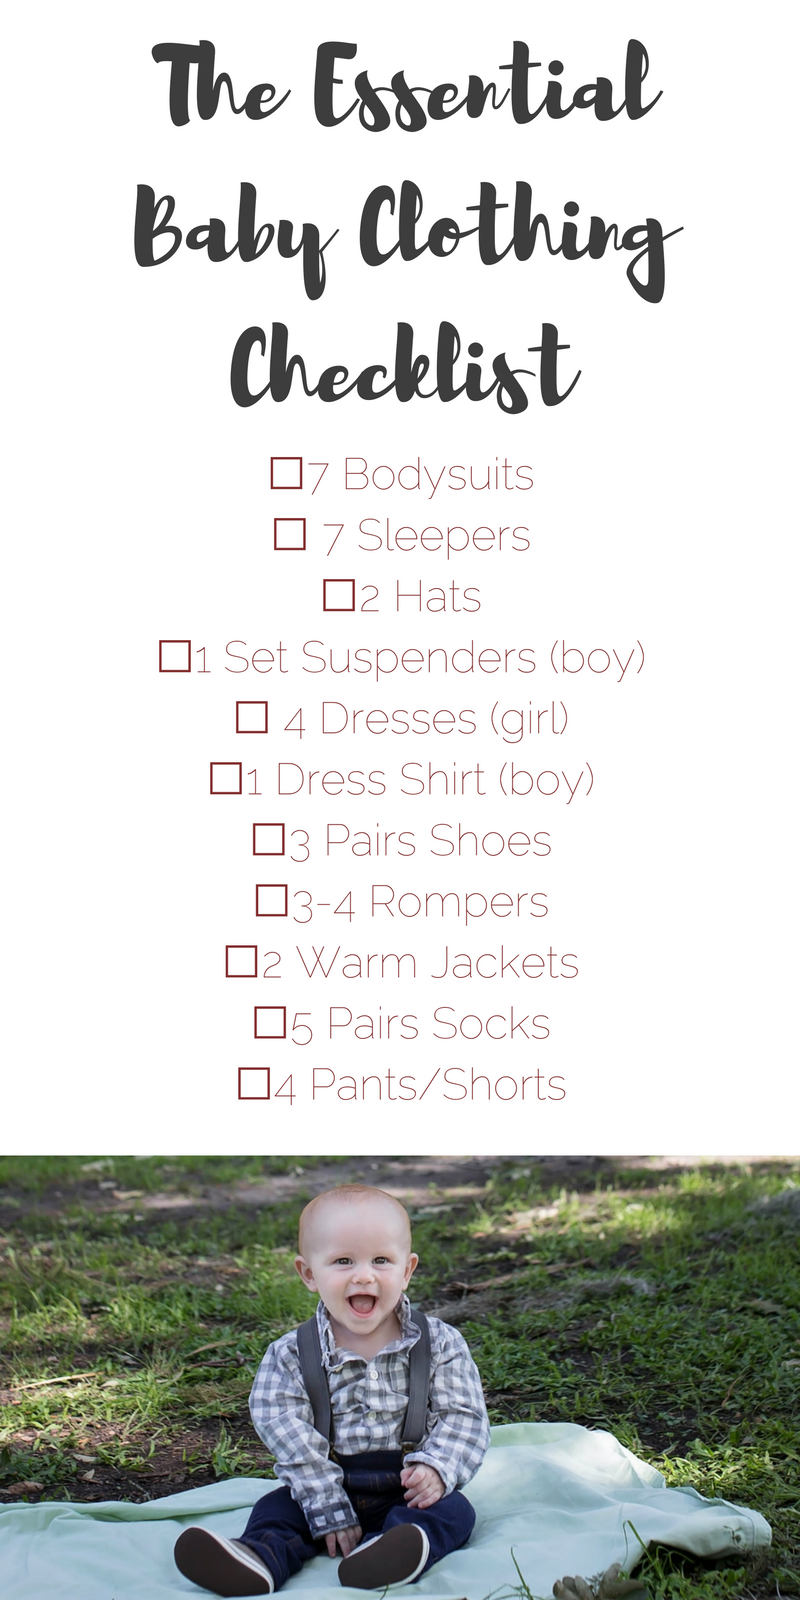 The Essential Baby ClothingChecklist